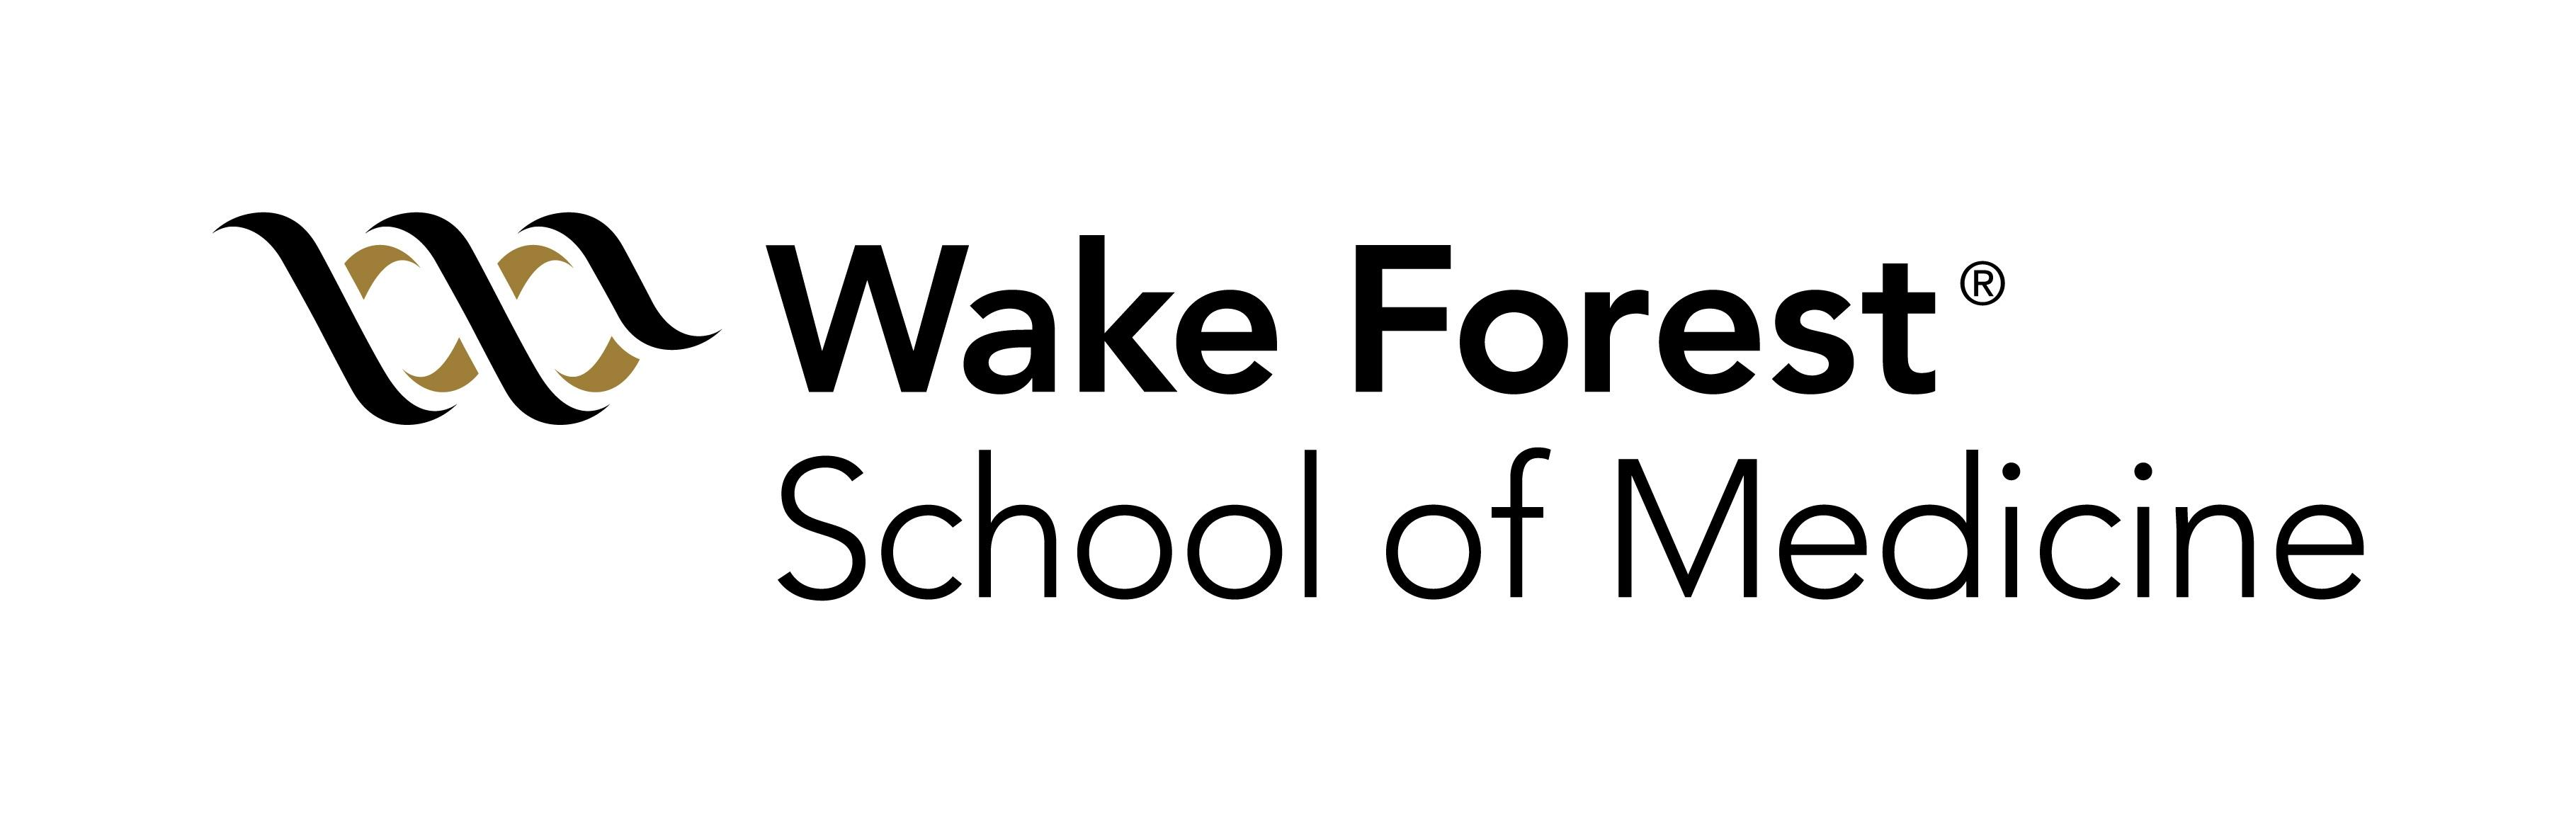 Associate Chief for Learning Healthcare System Research - Wake Forest School of Medicine